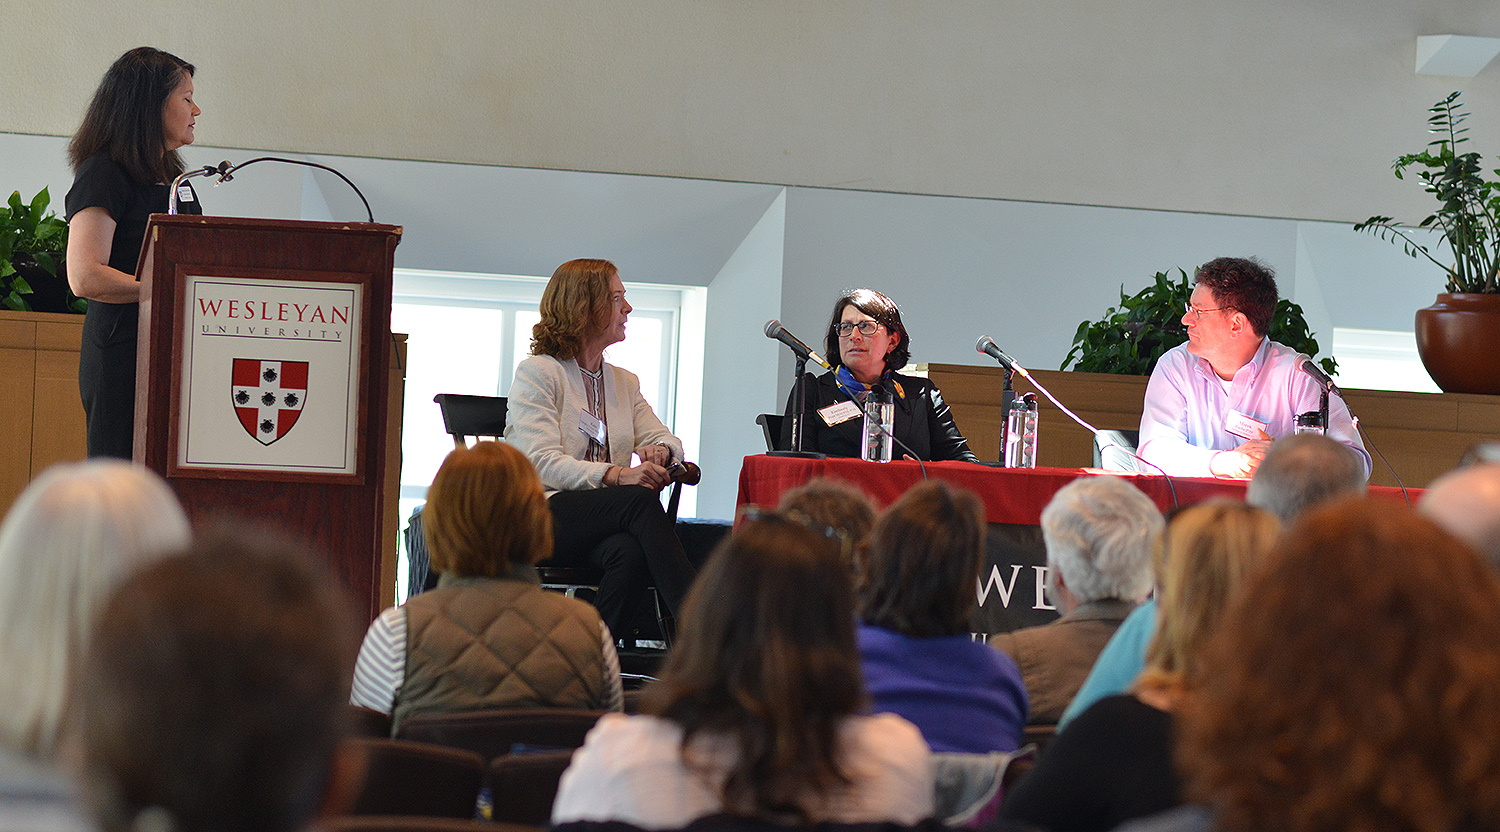 Prospective parents attended an interactive discussion with parents of current students. Kate Quigley Lynch '82, P'17, '19; Kimberly Pope MALS'14, P'19; and Marek Fuchs P'19 served as panelists and answered questions from the audience.